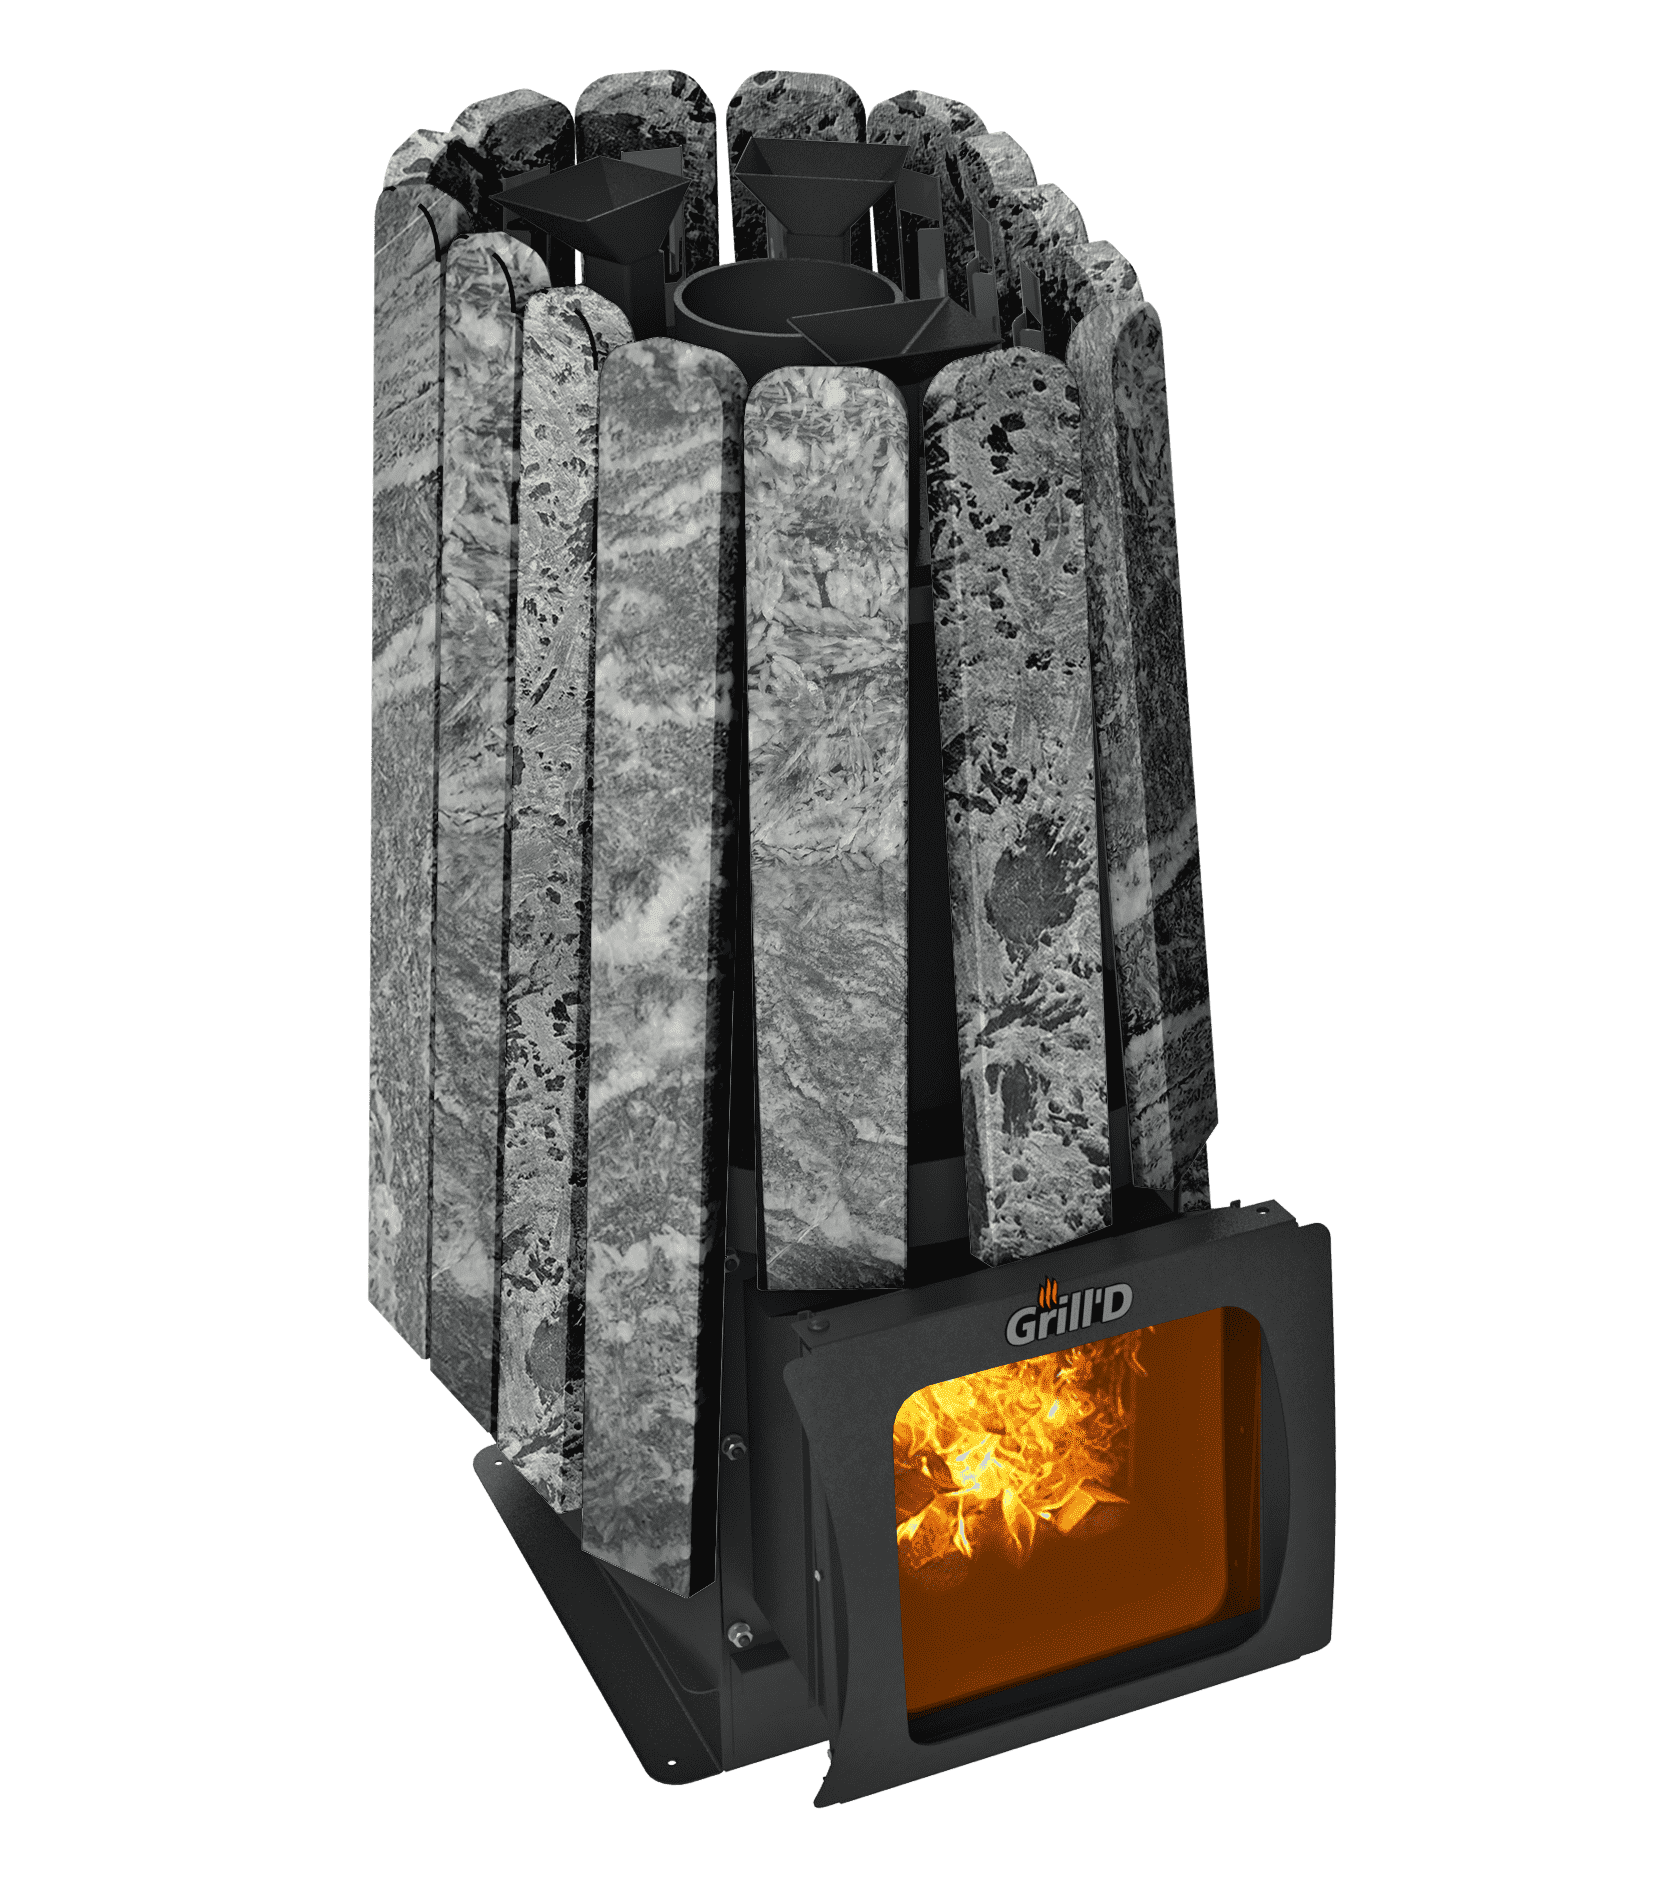 Банная печь Grill'D Cometa 350 Vega Short Window Max Stone